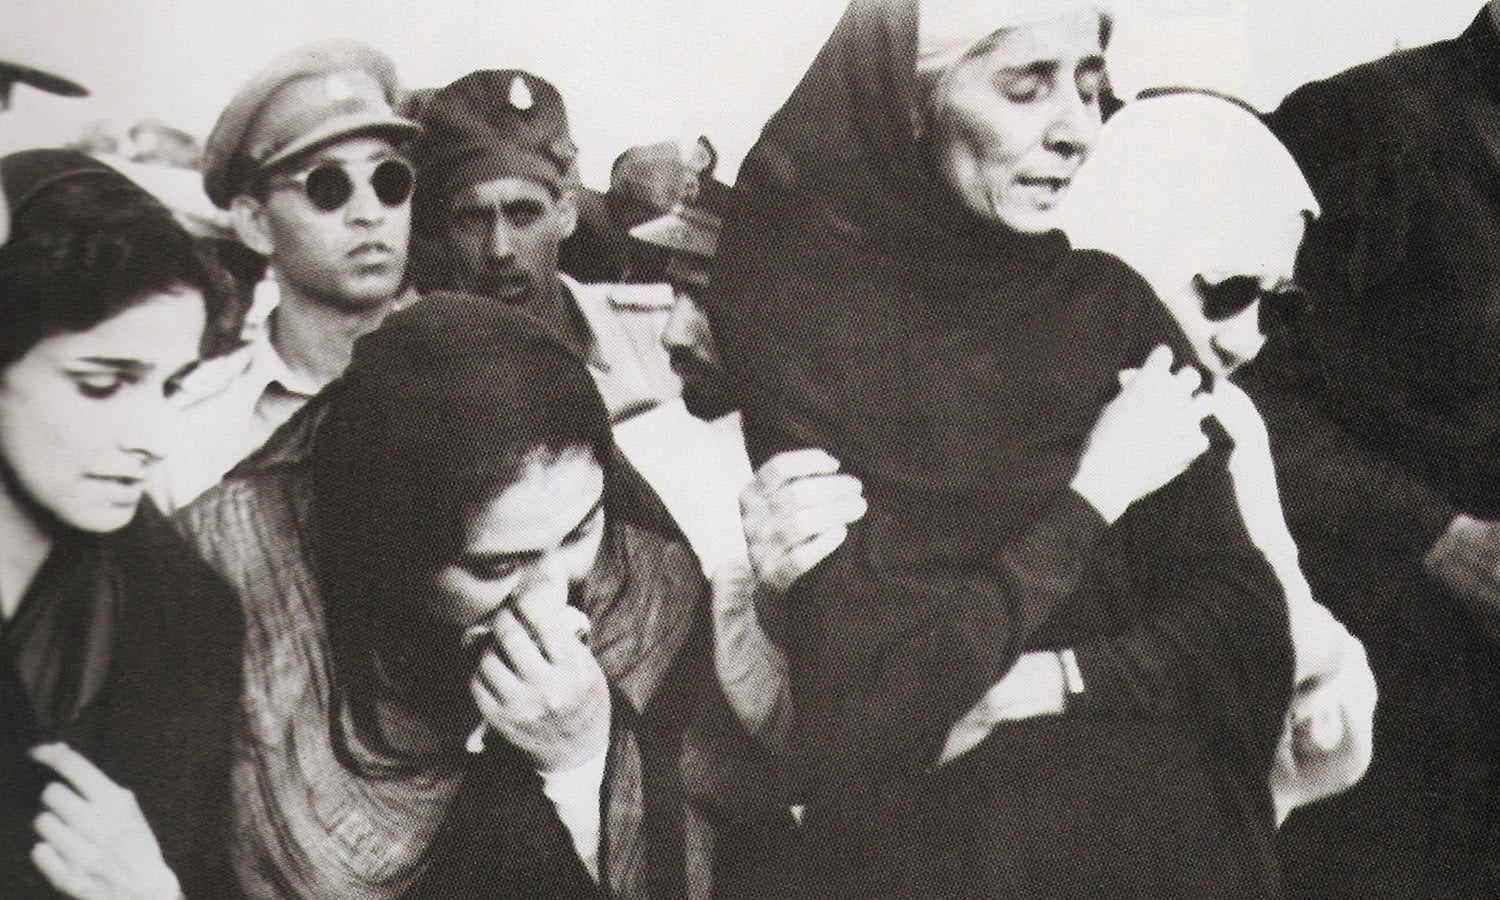 Dina Wadia (extreme left), Quaid-i-Azam Mohammad Ali Jinnah's only daughter, flew in from Delhi to attend her father's funeral. Seen on her left are Lady Ghulam Hussain Hidayatullah, Miss Fatima Jinnah, and Lady Nusrat Haroon. All were clearly and understandably unable to hold back their tears as they grieved Quaid-i-Azam Jinnah's death. | Photo: The Press Information Department, Ministry of Information, Broadcasting & National Heritage, Islamabad (PID)